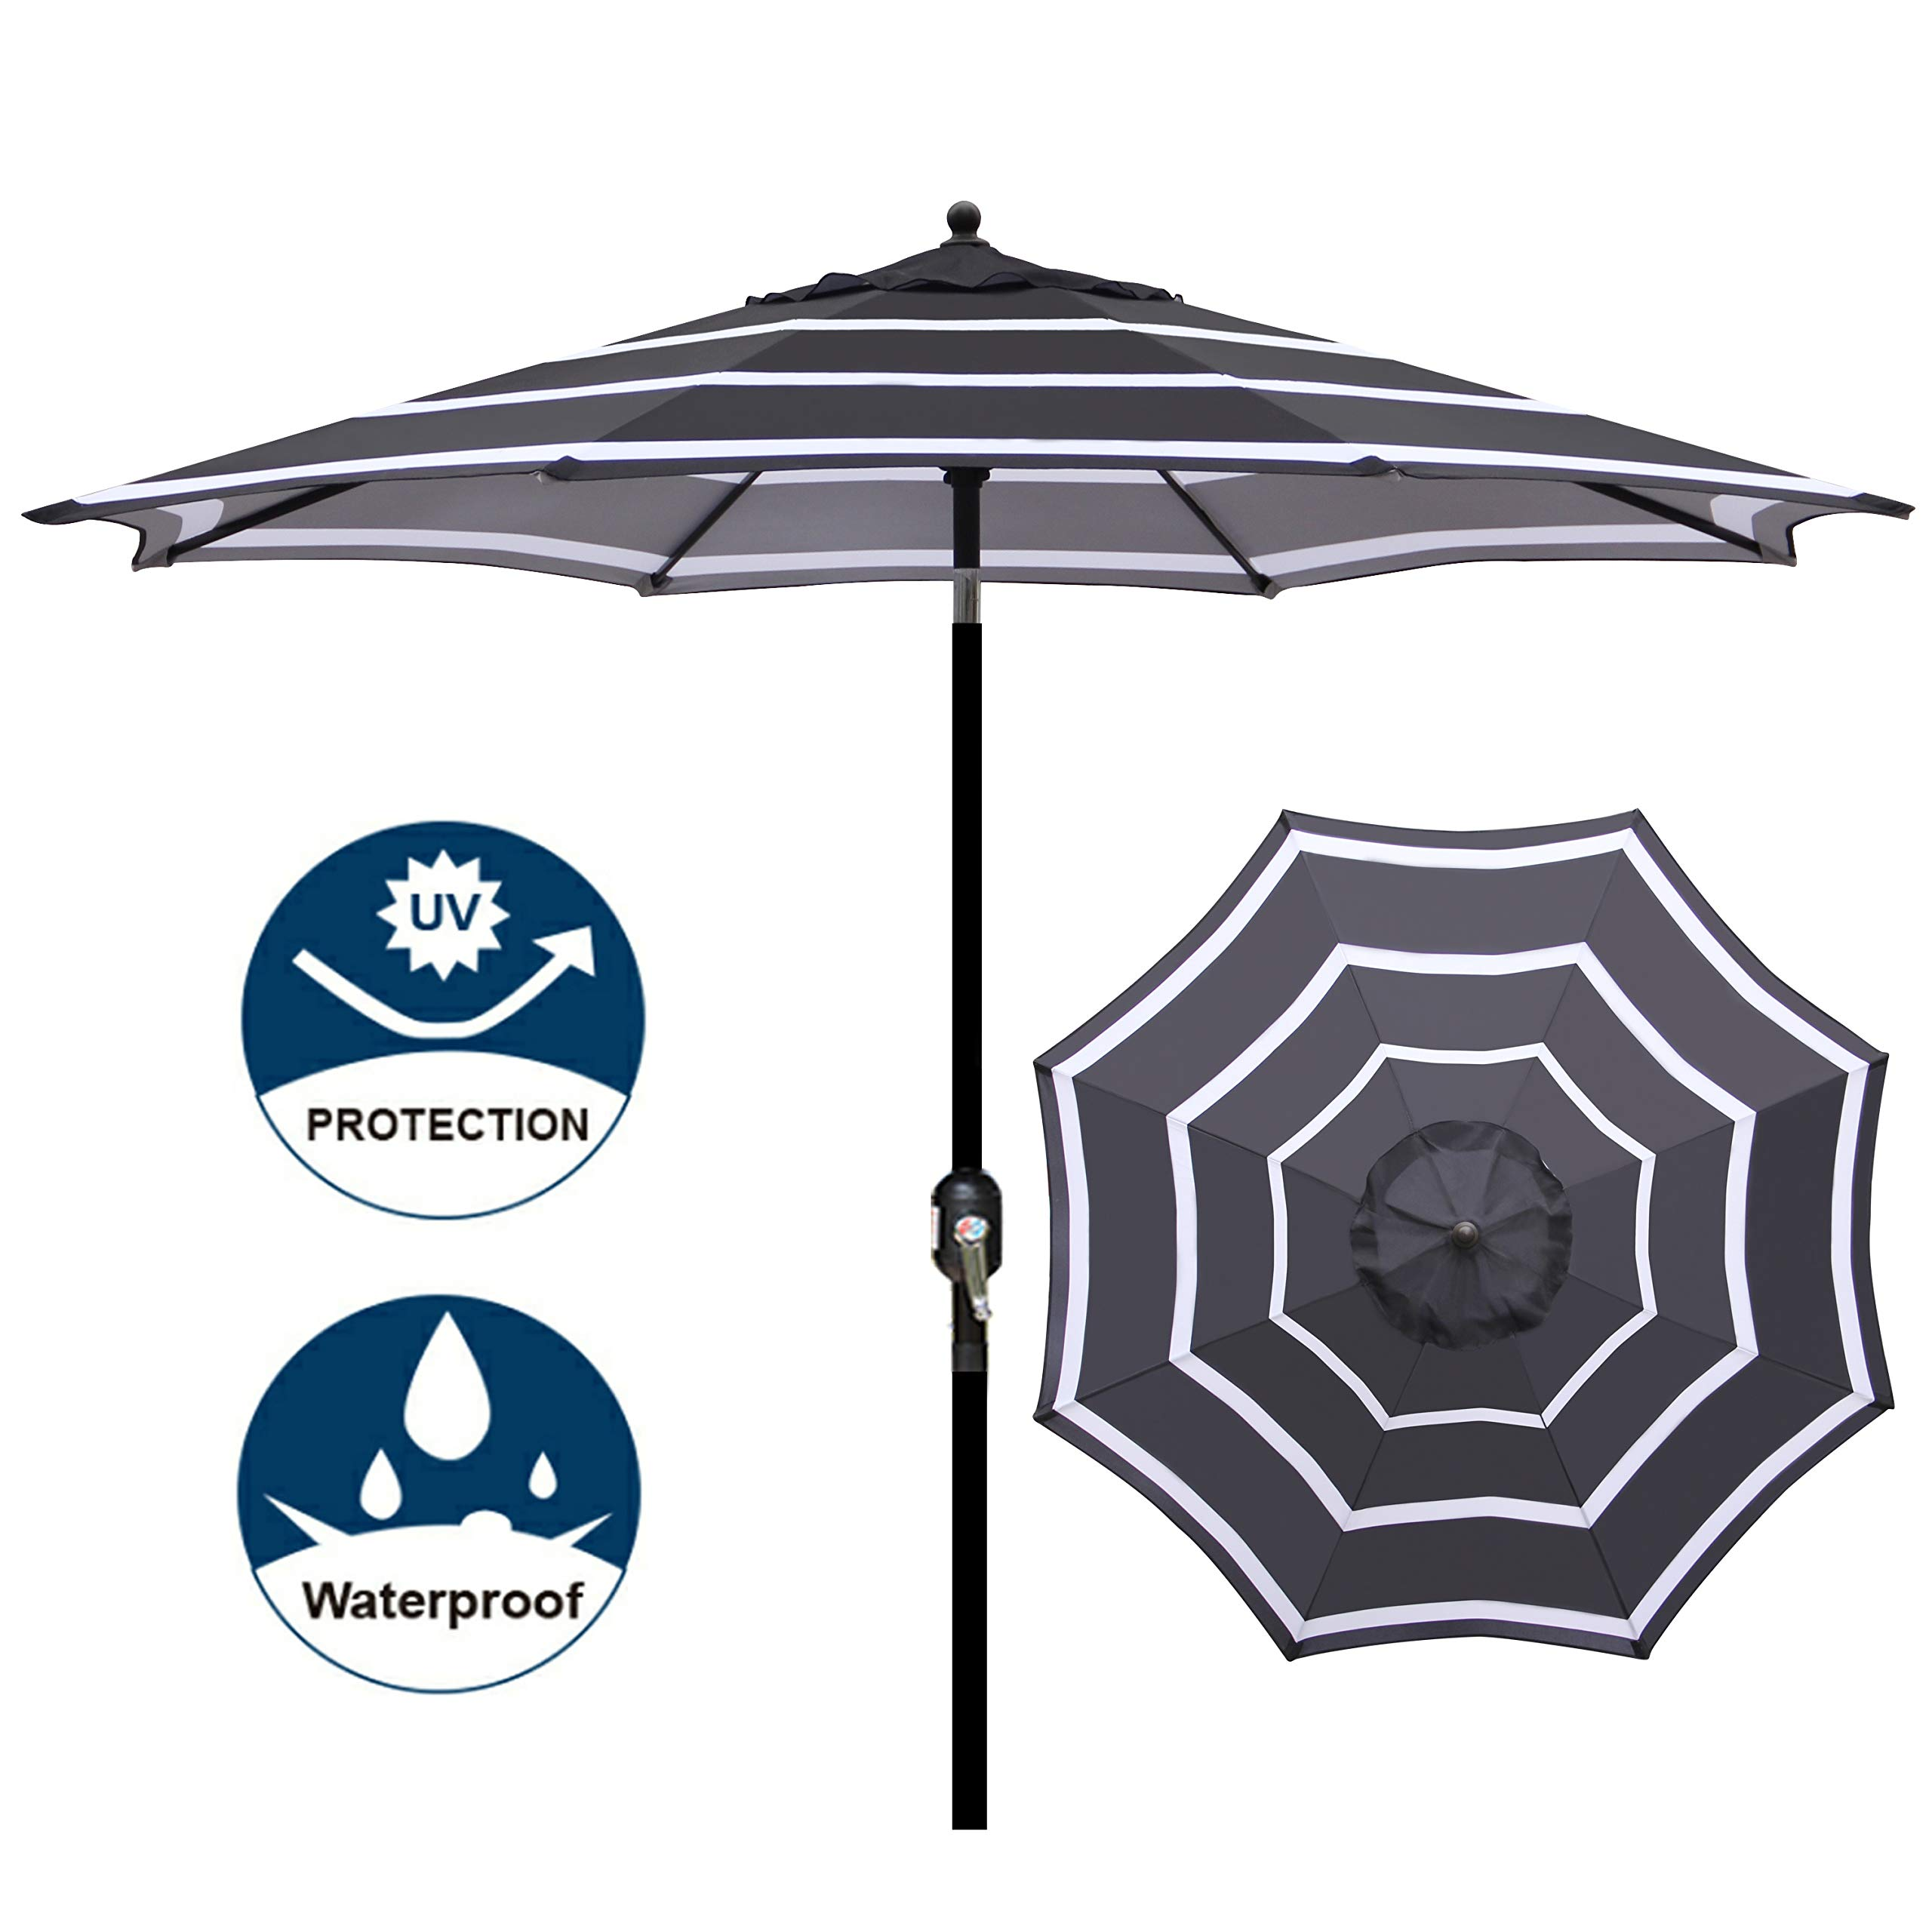 Blissun 9' Outdoor Aluminum Patio Umbrella, Market Striped Umbrella with Push Button Tilt and Crank (Black & White) by Blissun